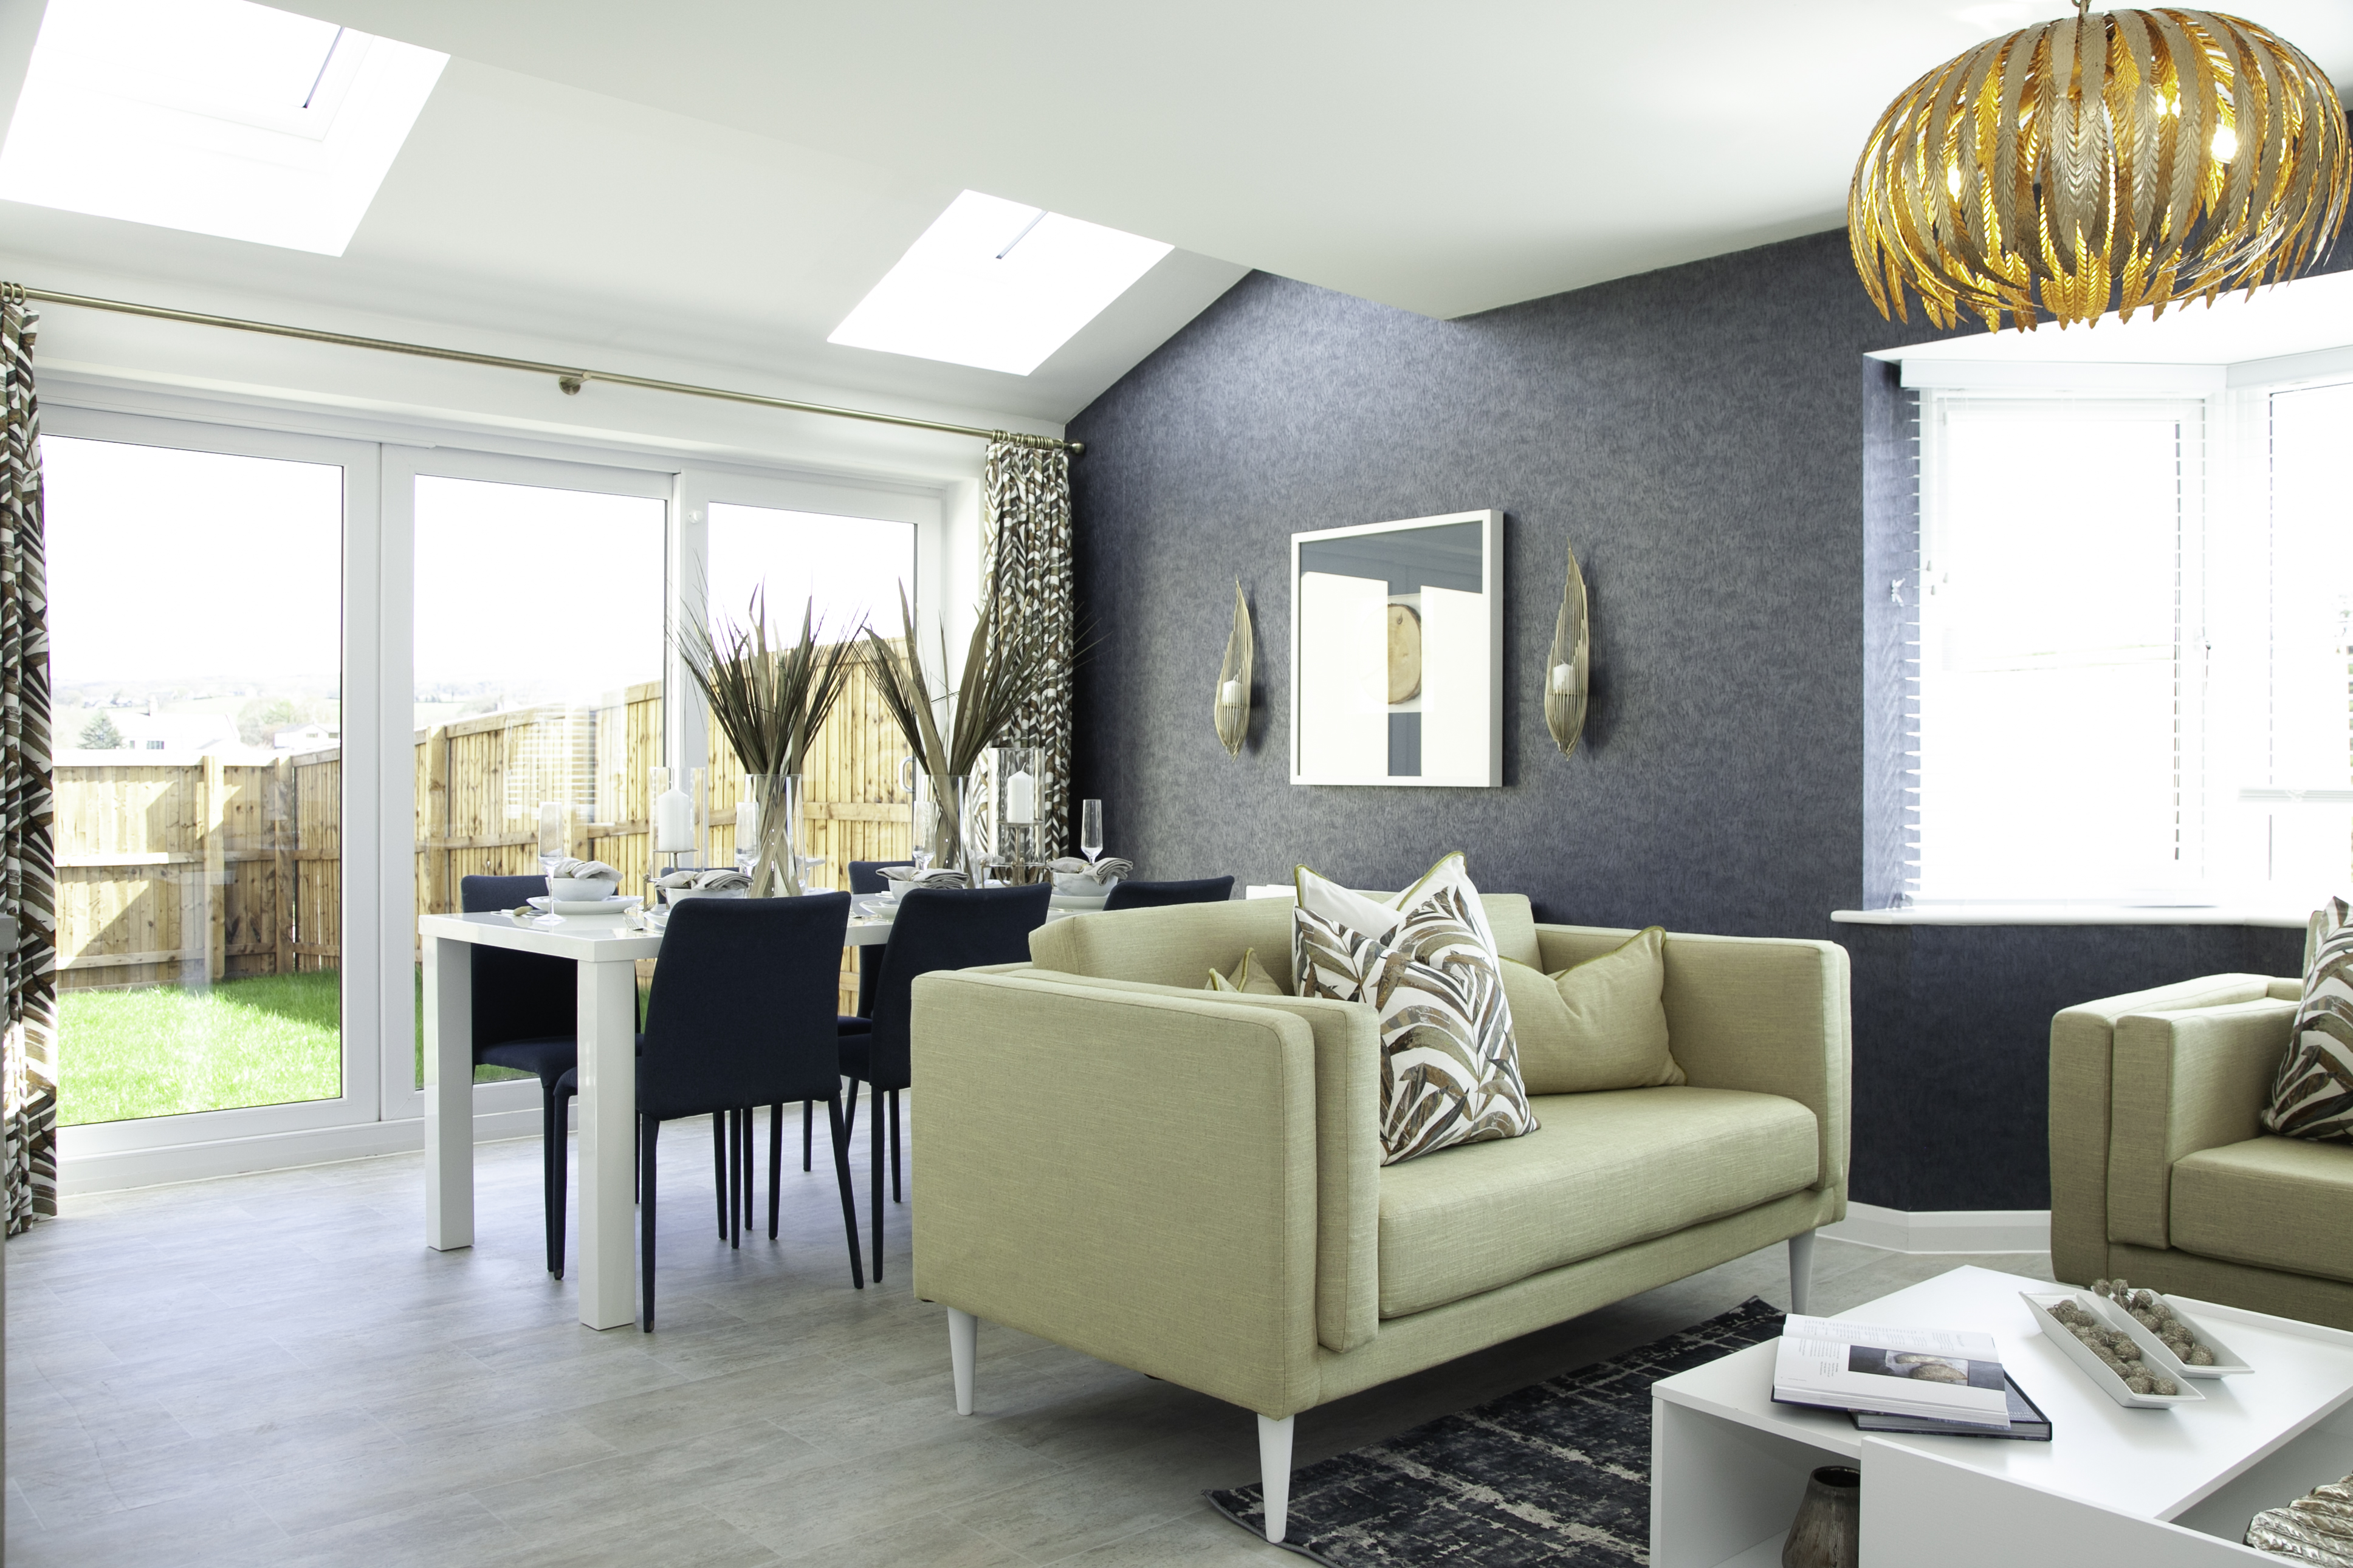 Stunning lounge at Redwing's Aughton Wood Park Development.